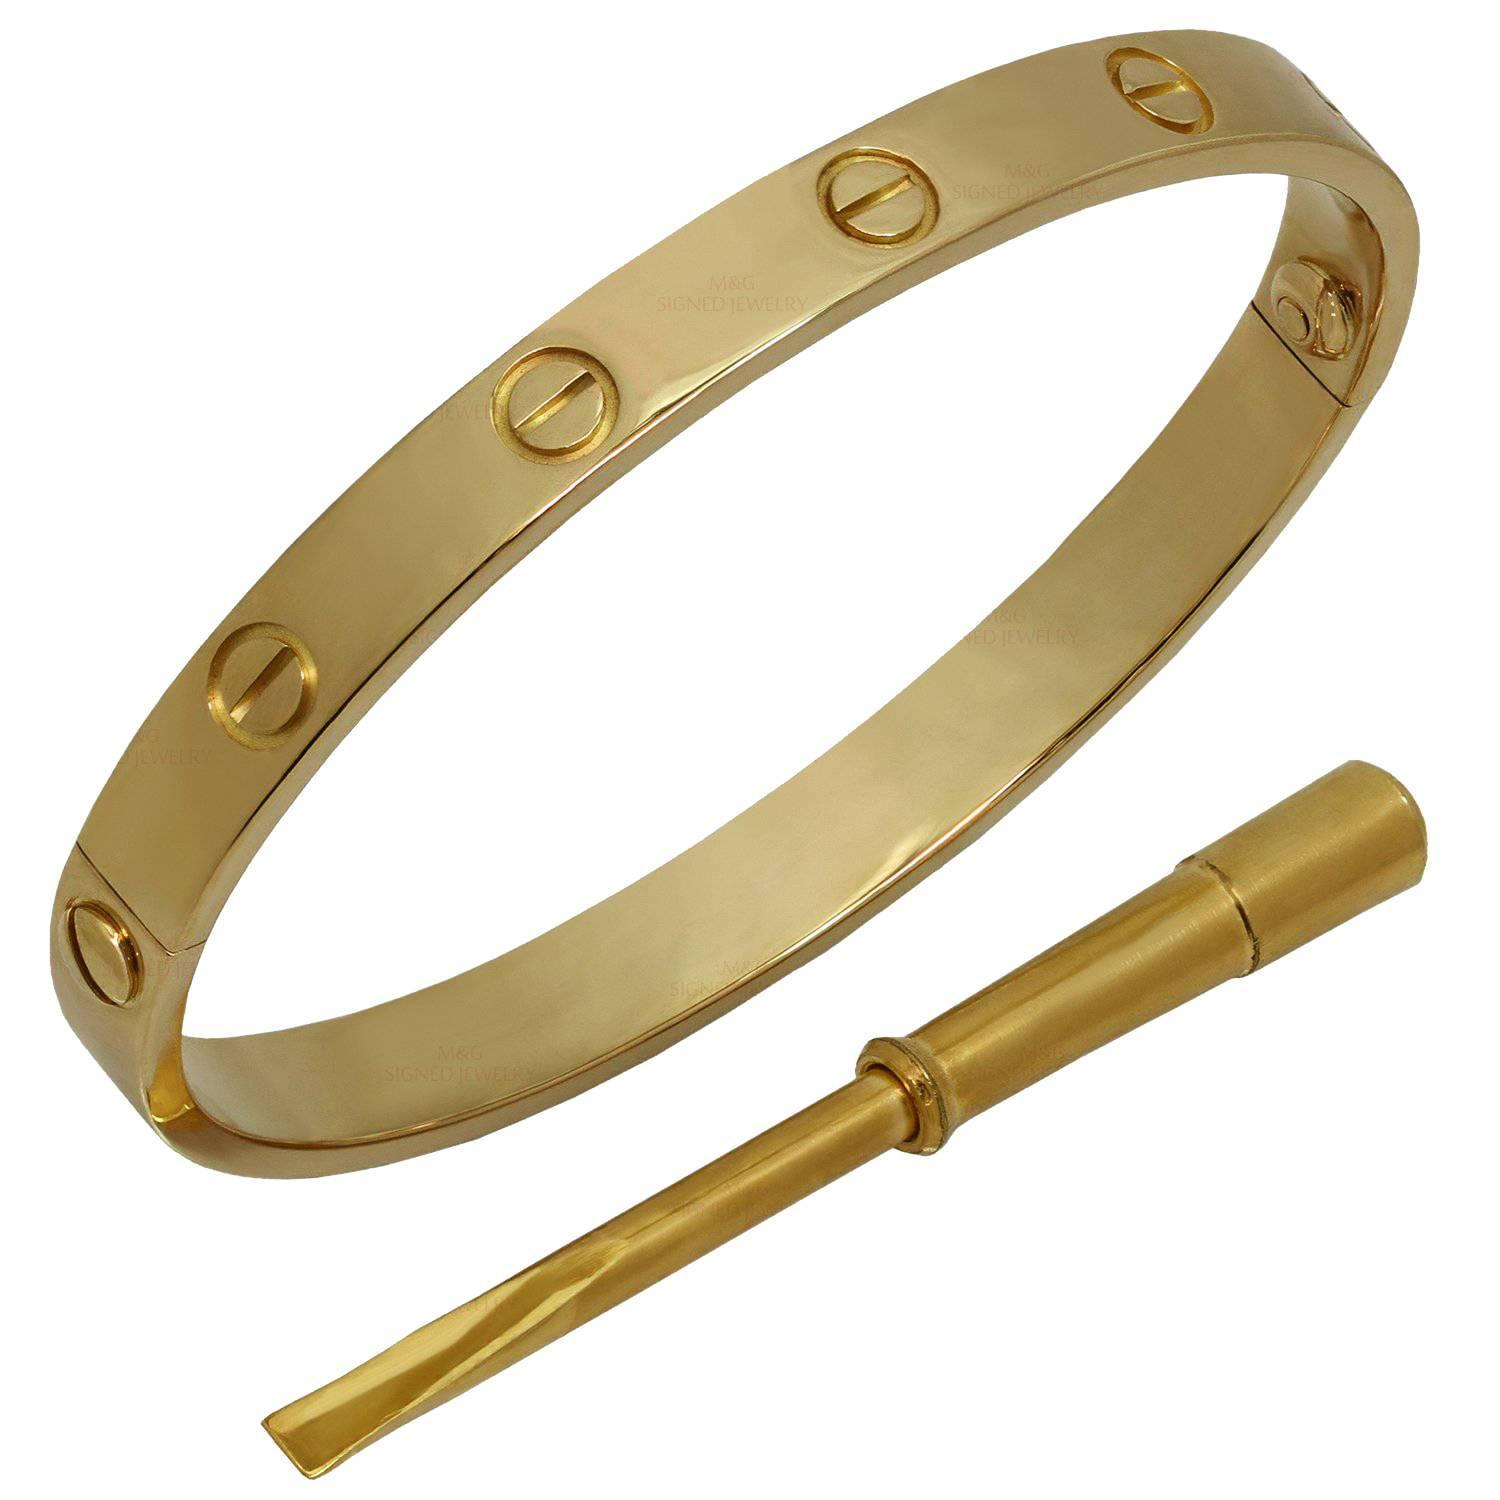 brands gold loved branded bangle yellow model product jewellery size love bangles pre category banglebracelet cartier original bracelet cipullo aldo